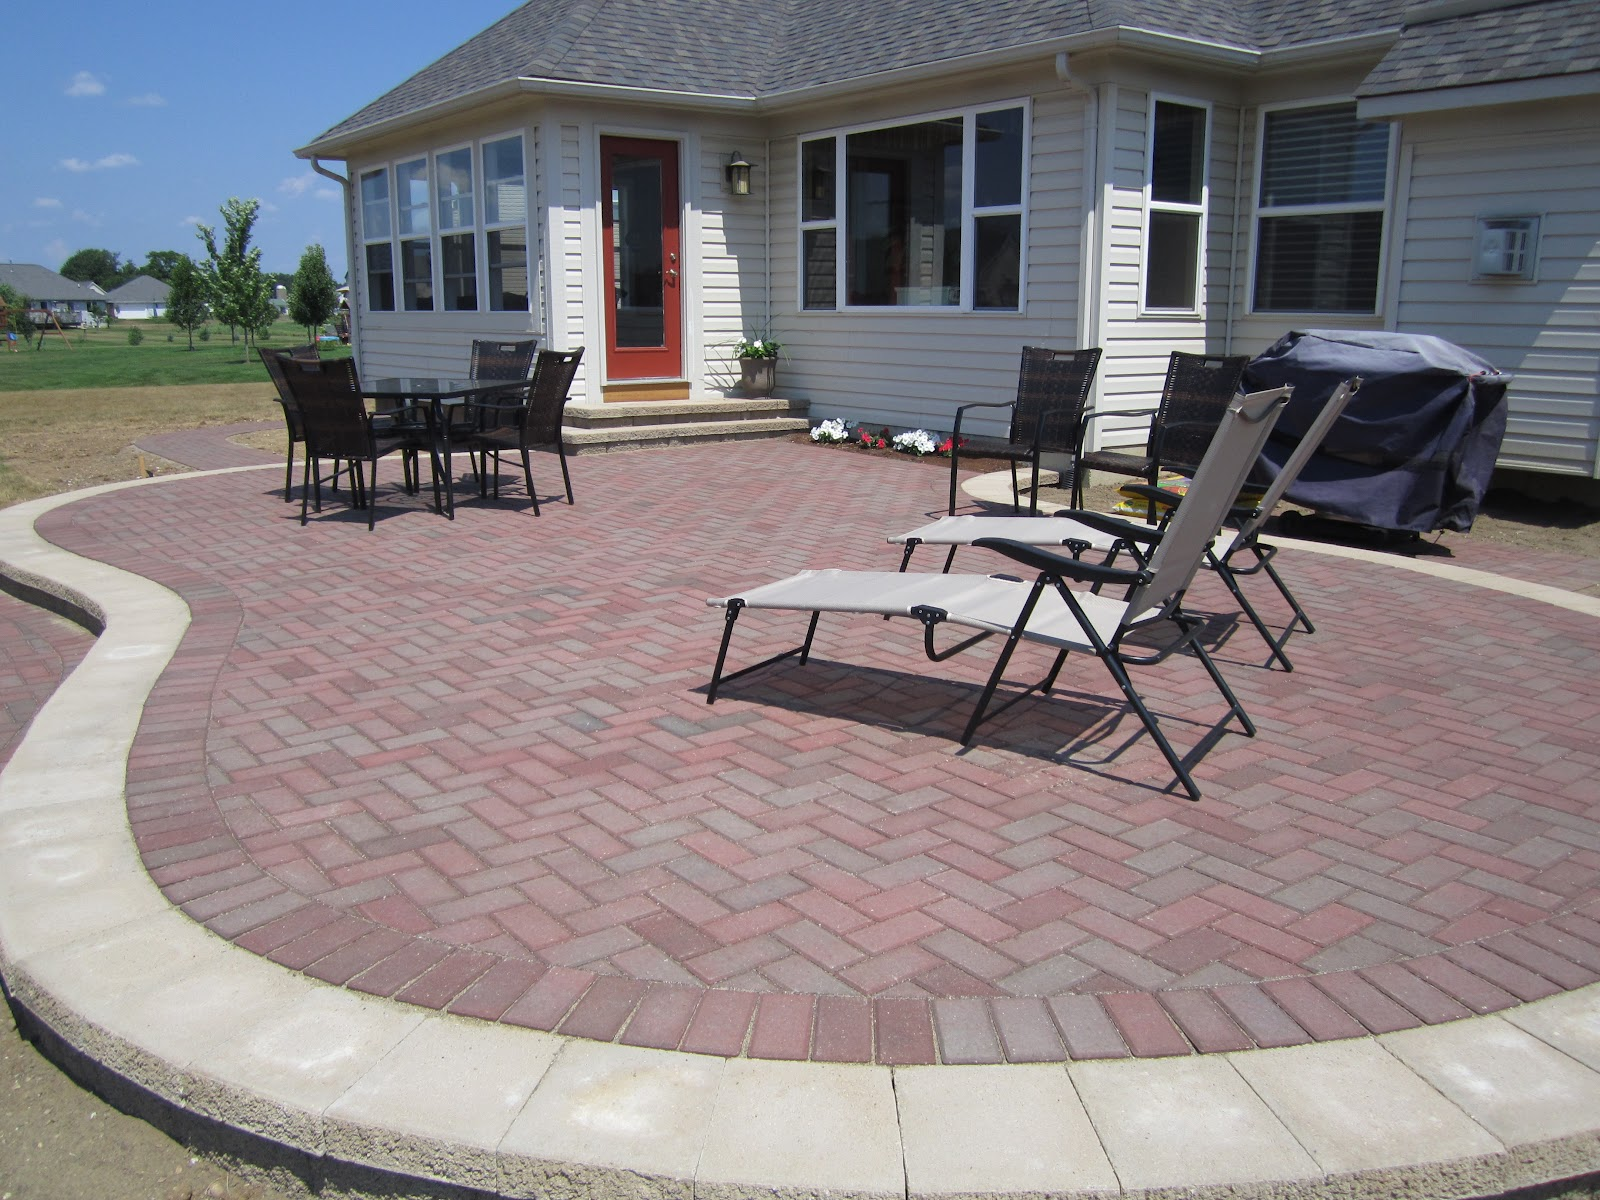 Brick Pavers,Canton,Ann Arbor,Plymouth,Patio,Patios,Repair ... on Brick Paver Patio Designs id=57815